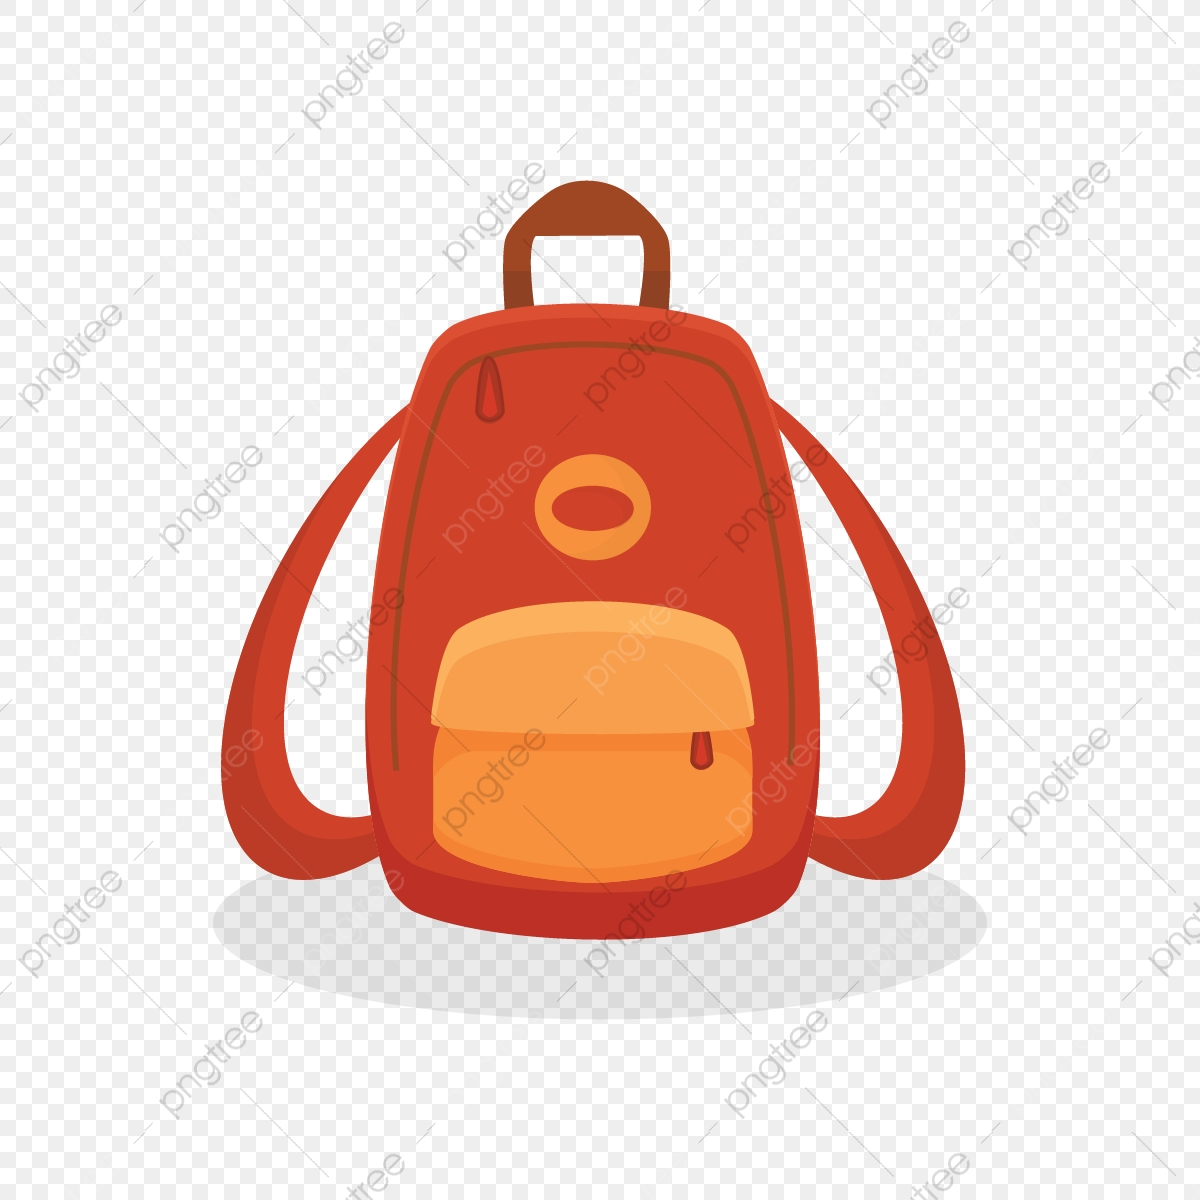 Backpack Clipart Vector Png Element Backpack Clipart Backpack Cute Png And Vector With Transparent Background For Free Download Download 1,000+ royalty free backpack clipart vector images. https pngtree com freepng backpack clipart vector png element 5236663 html